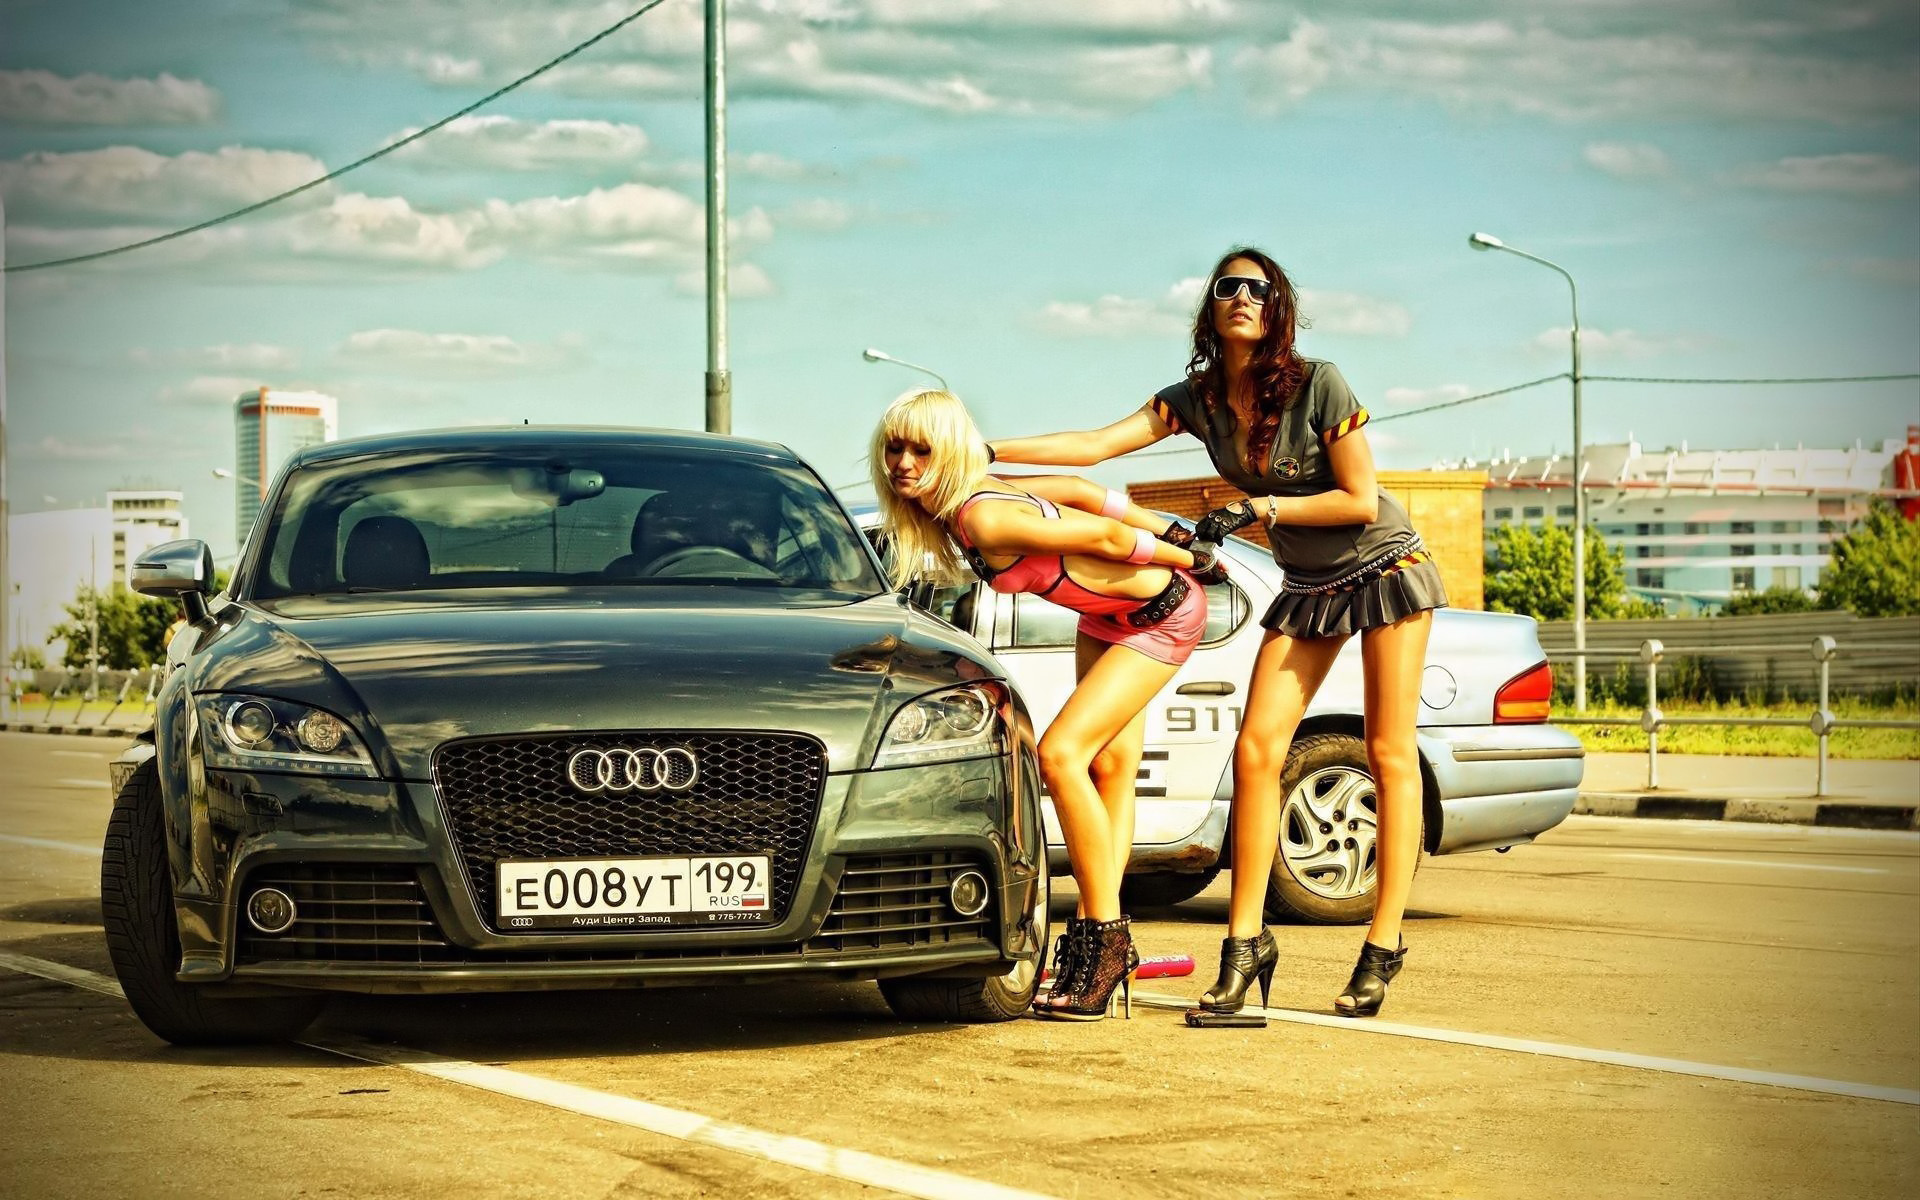 Girls  Cars Full Hd Wallpaper And Background Image -3389